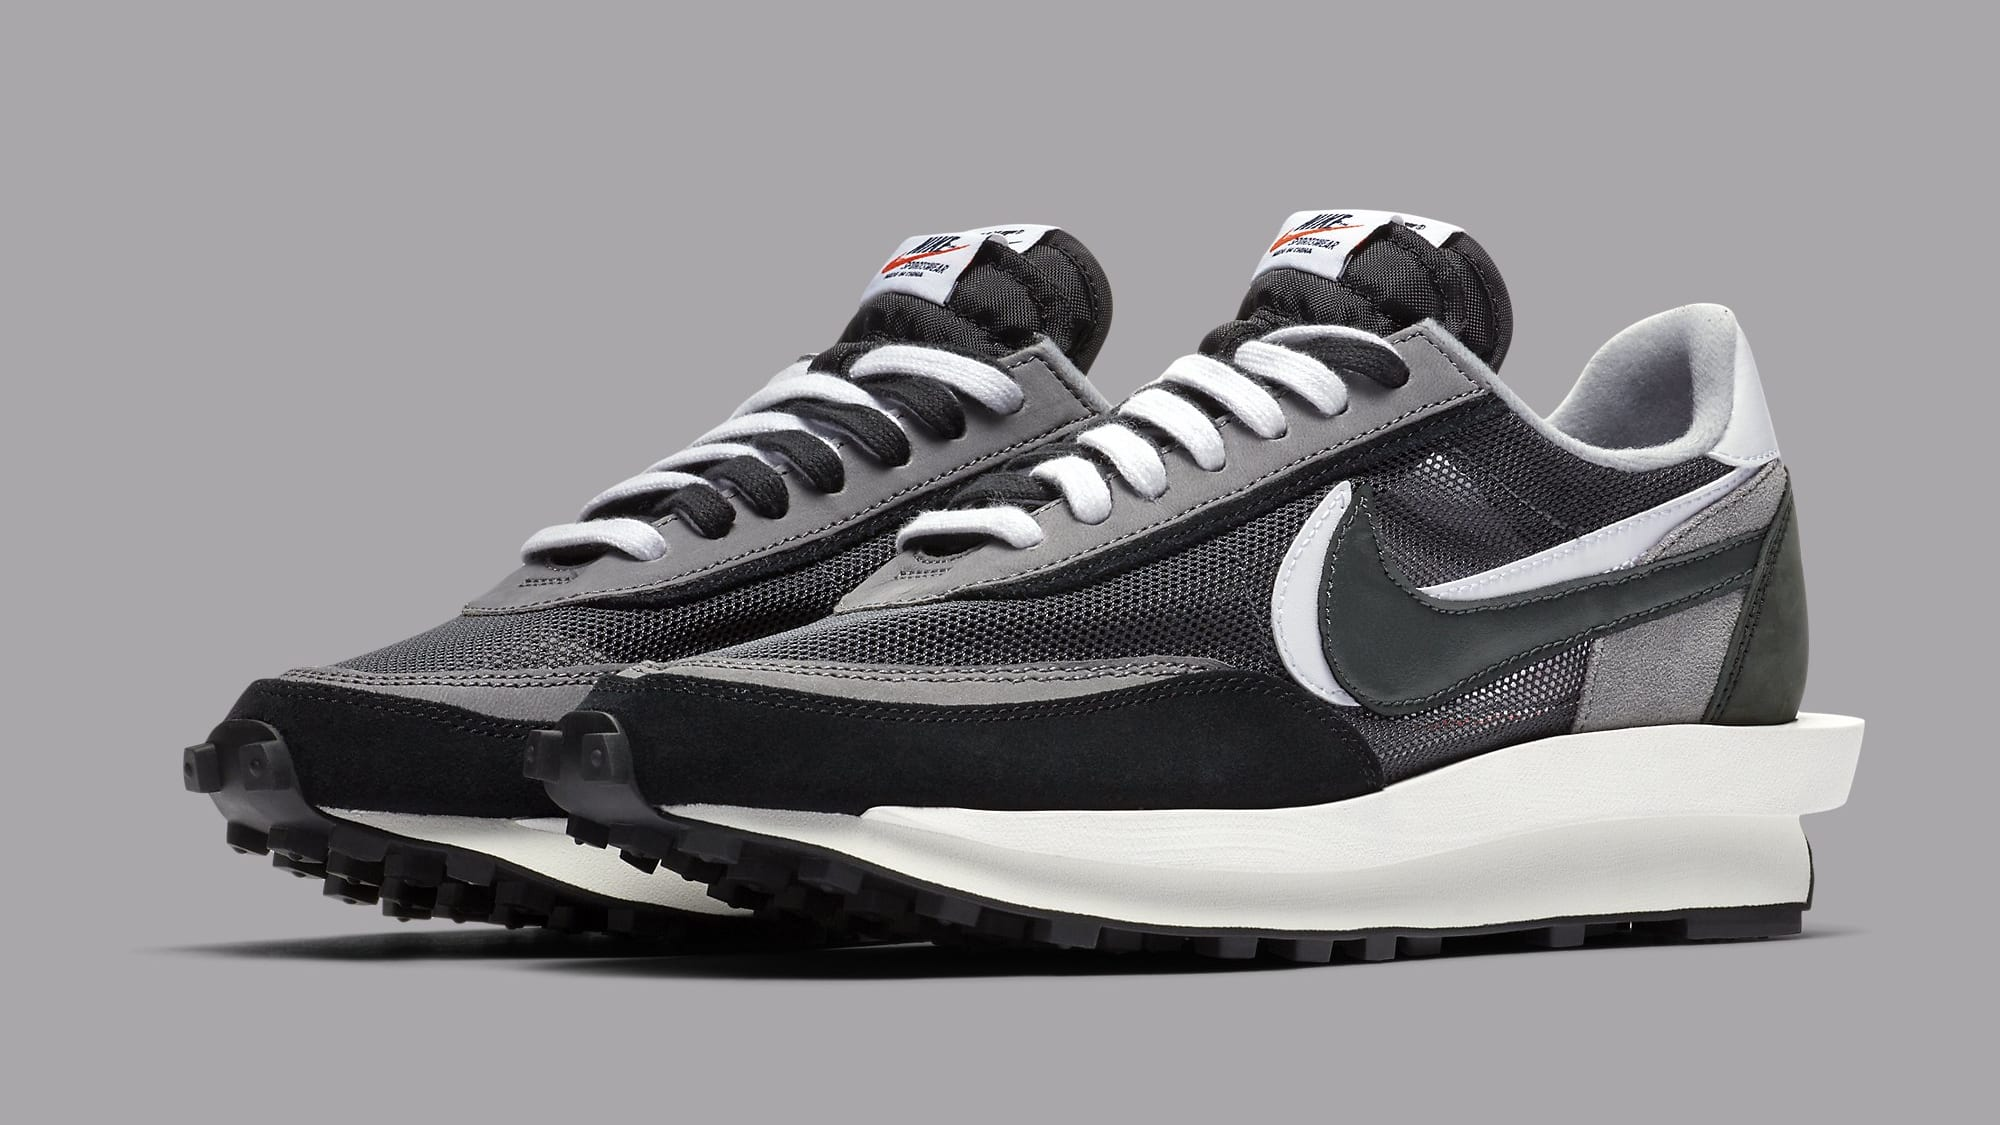 Sacai x Nike LDWaffle Black Anthracite Release Date BV0073-001 Pair